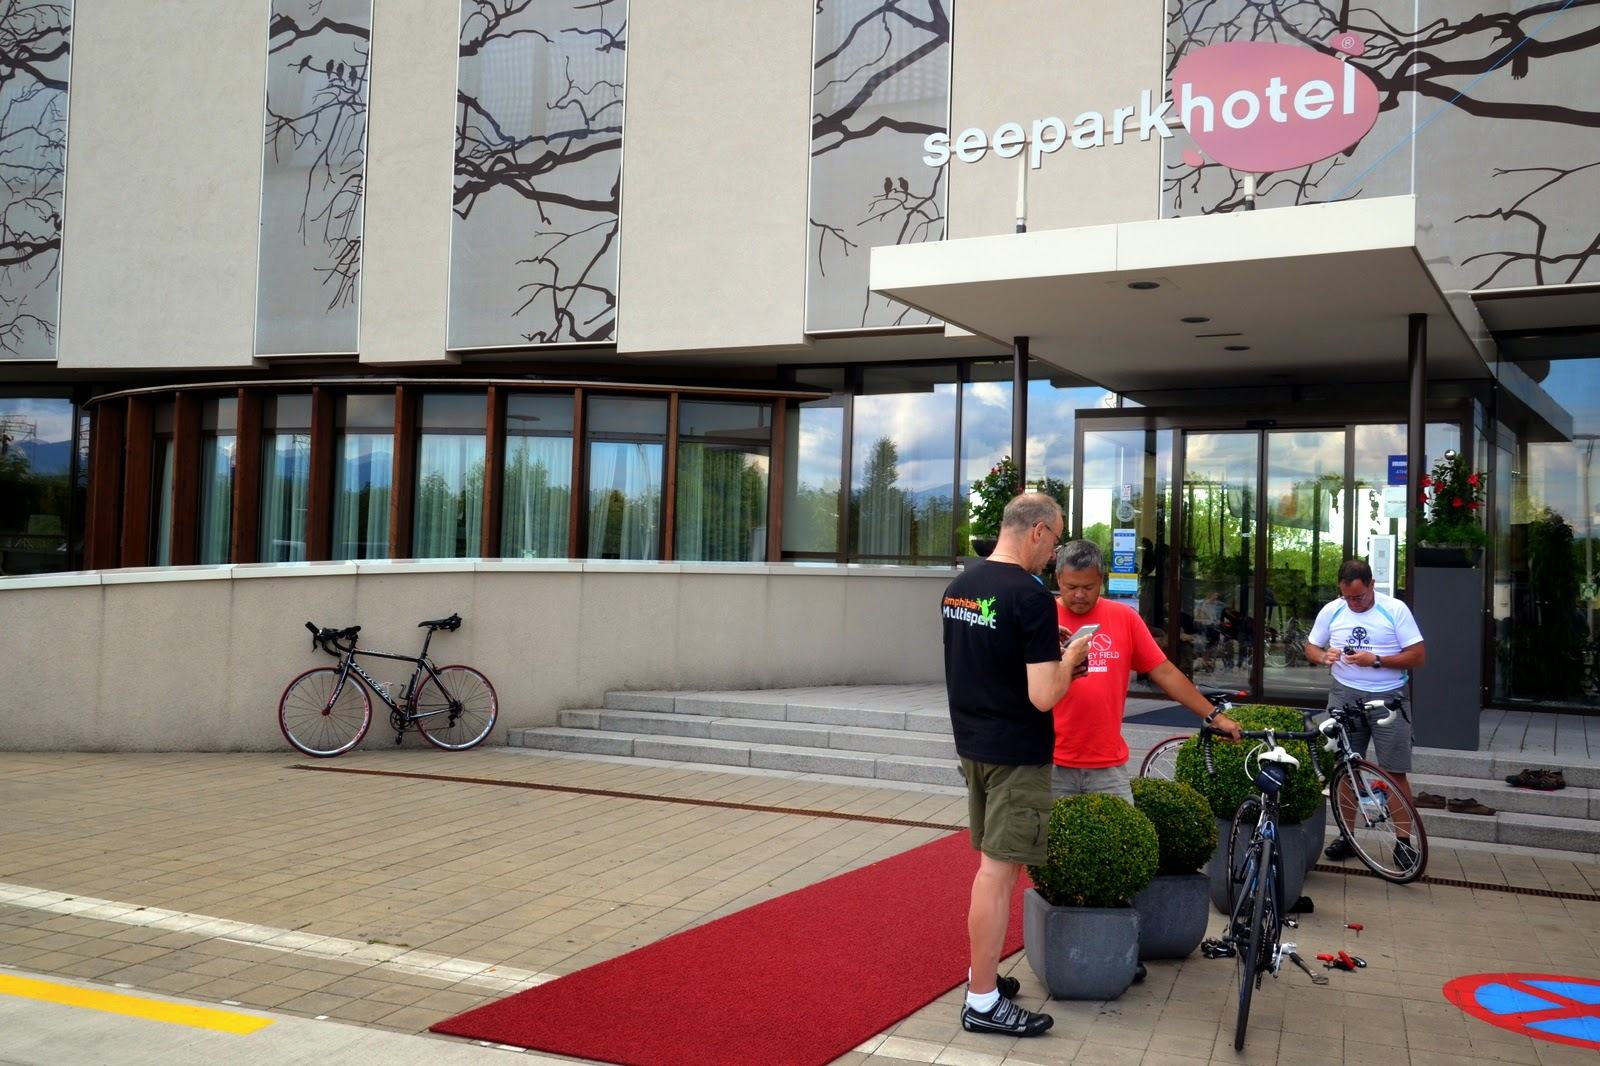 ironman triathlon bike rental klagenfurt